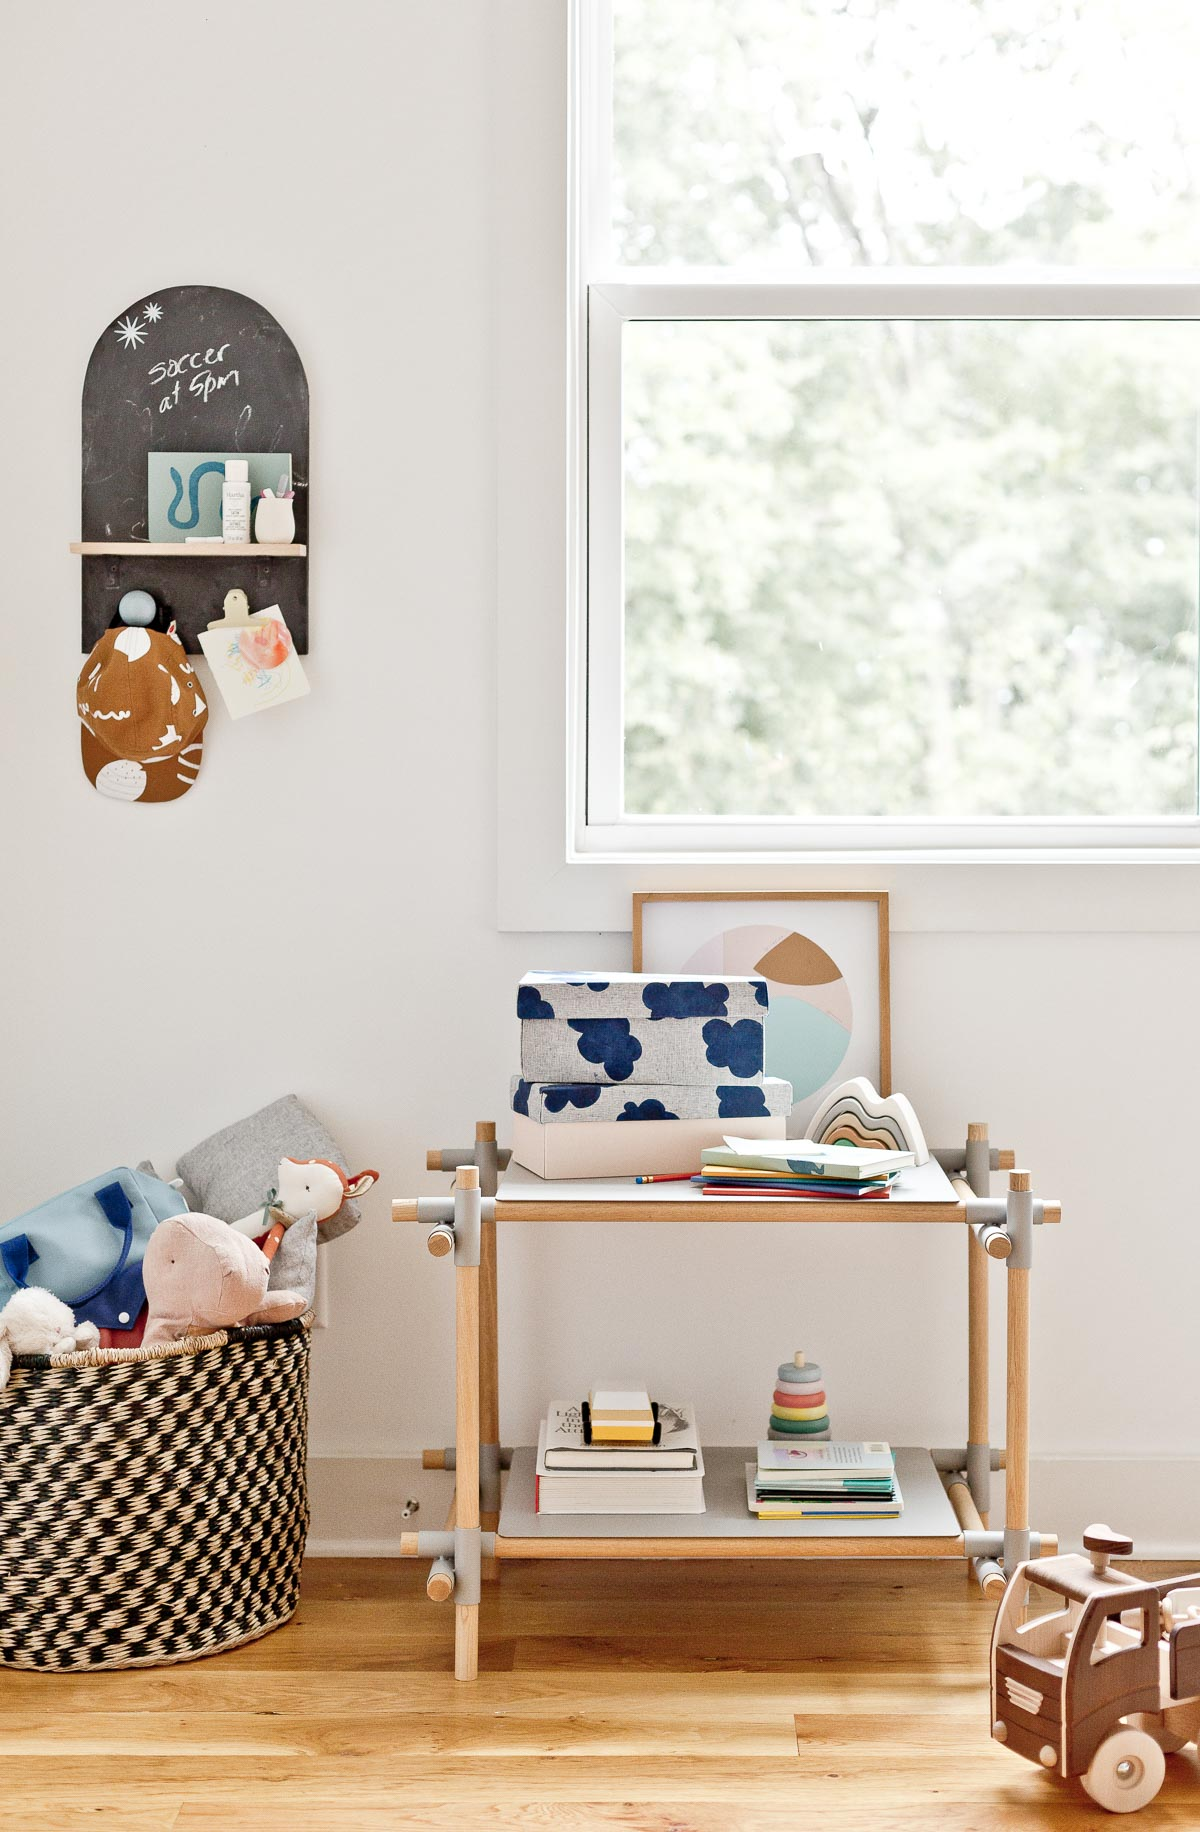 This cute little kid's corner is filled with practical (but still cool) back to school ideas that even adults would use. #diy #organization #storageboxes #decor #backtoschool #kidscrafts #kidsroom #memoboard #wallorganizer #chalkboard